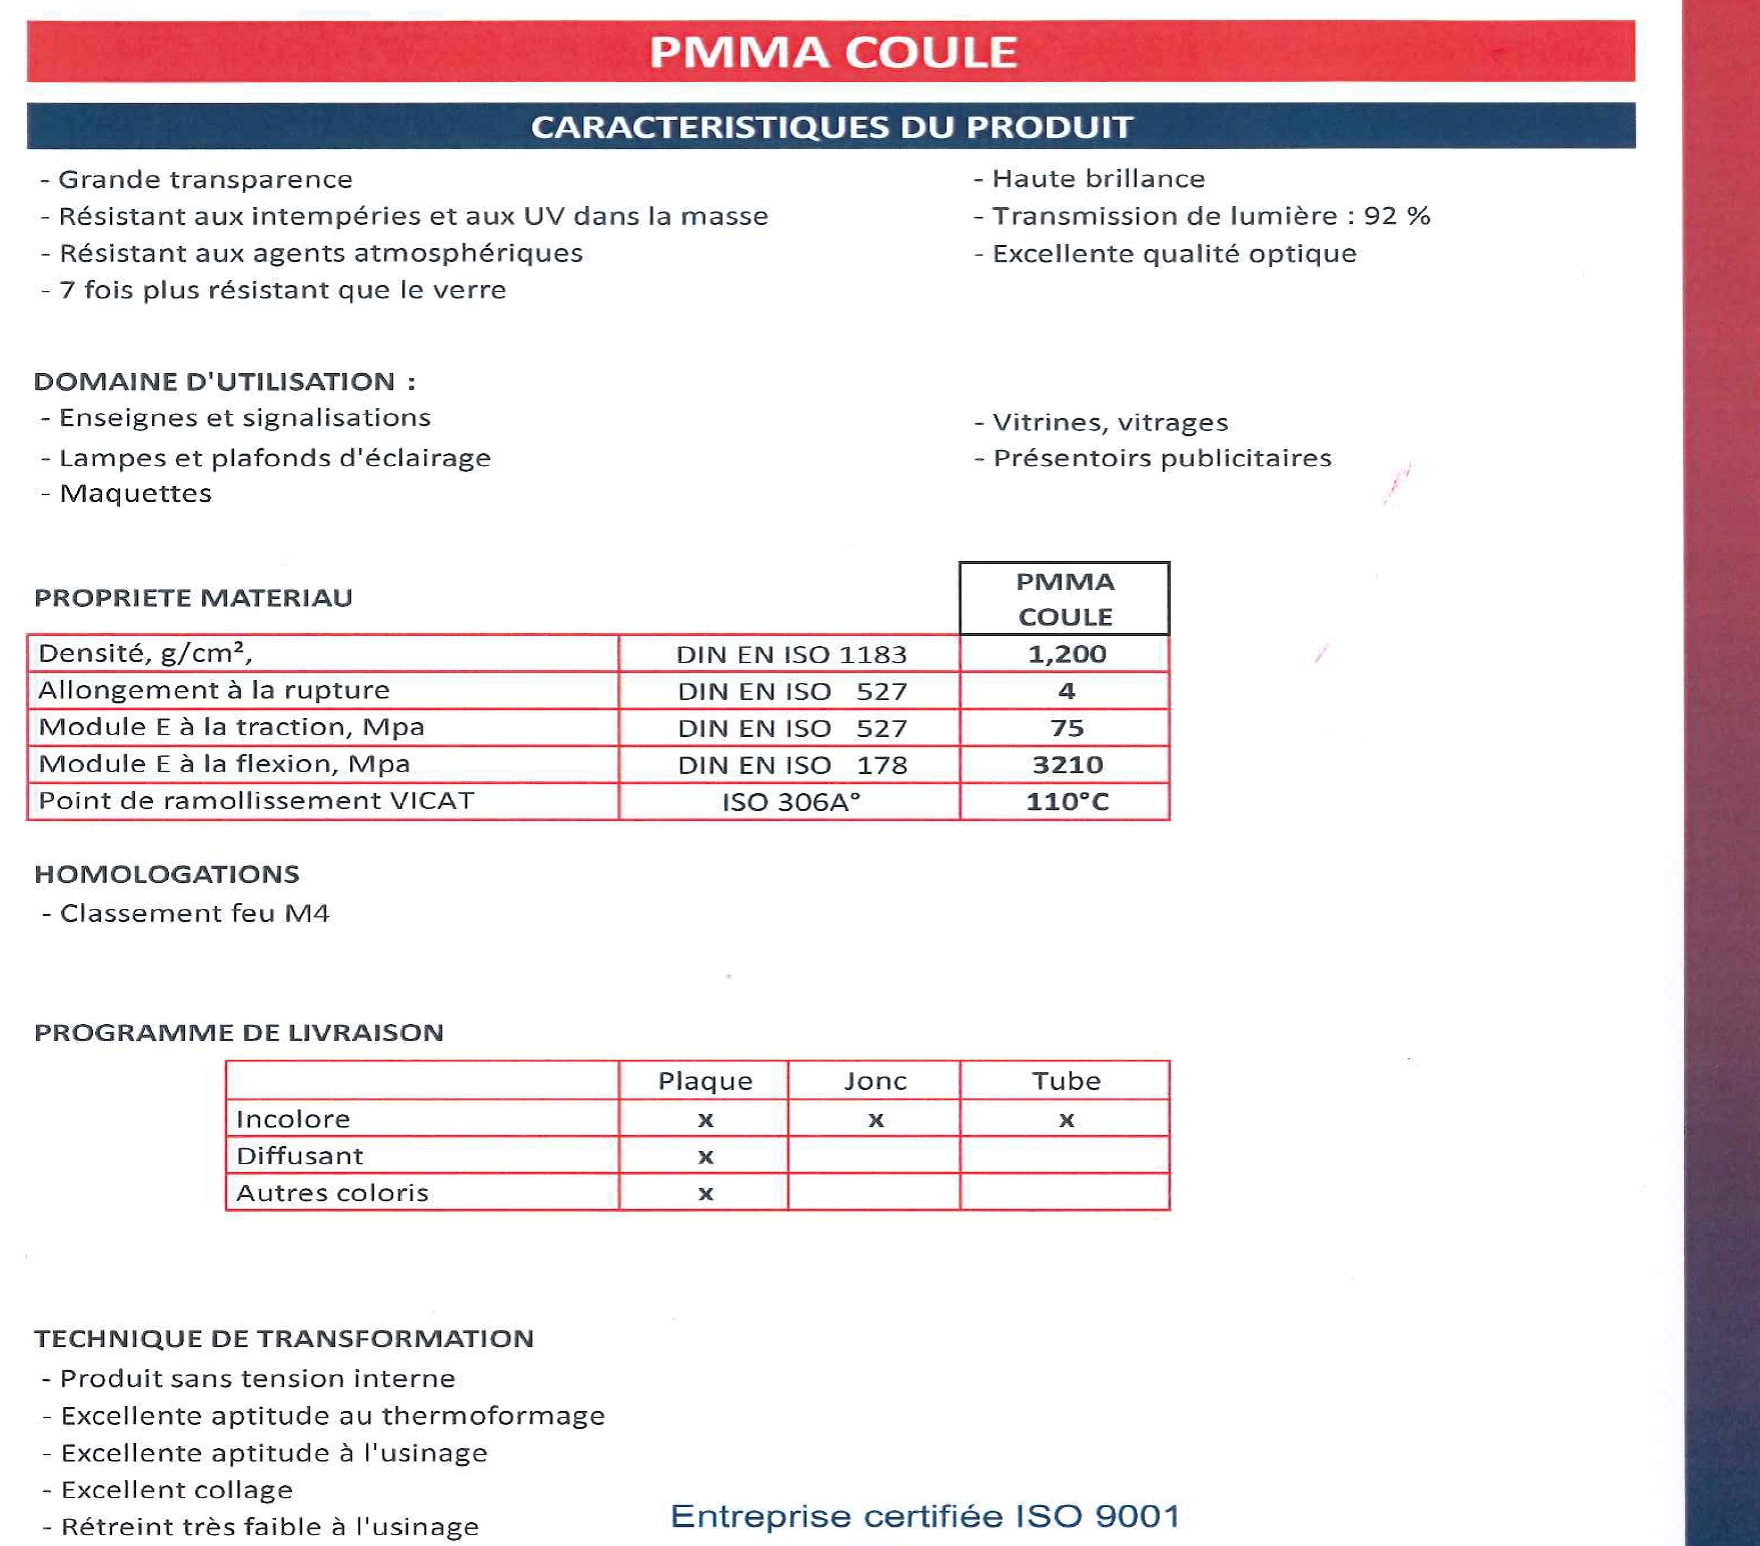 1. PMMA COULE